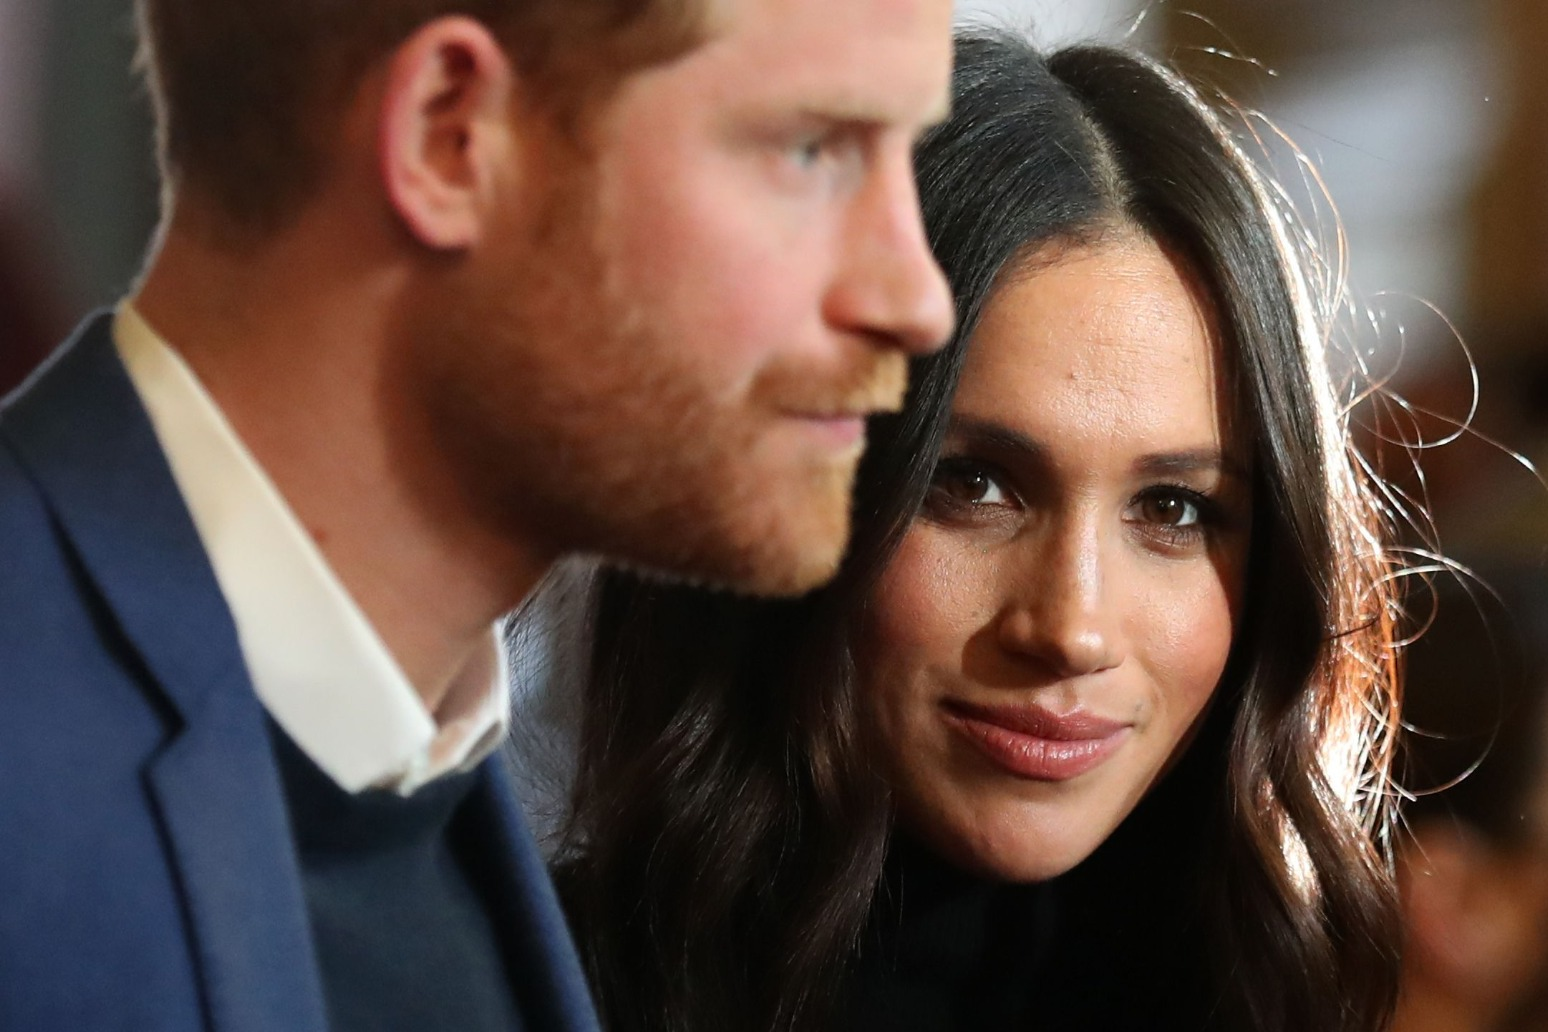 Harry and Meghan want future roles defined sooner rather than later